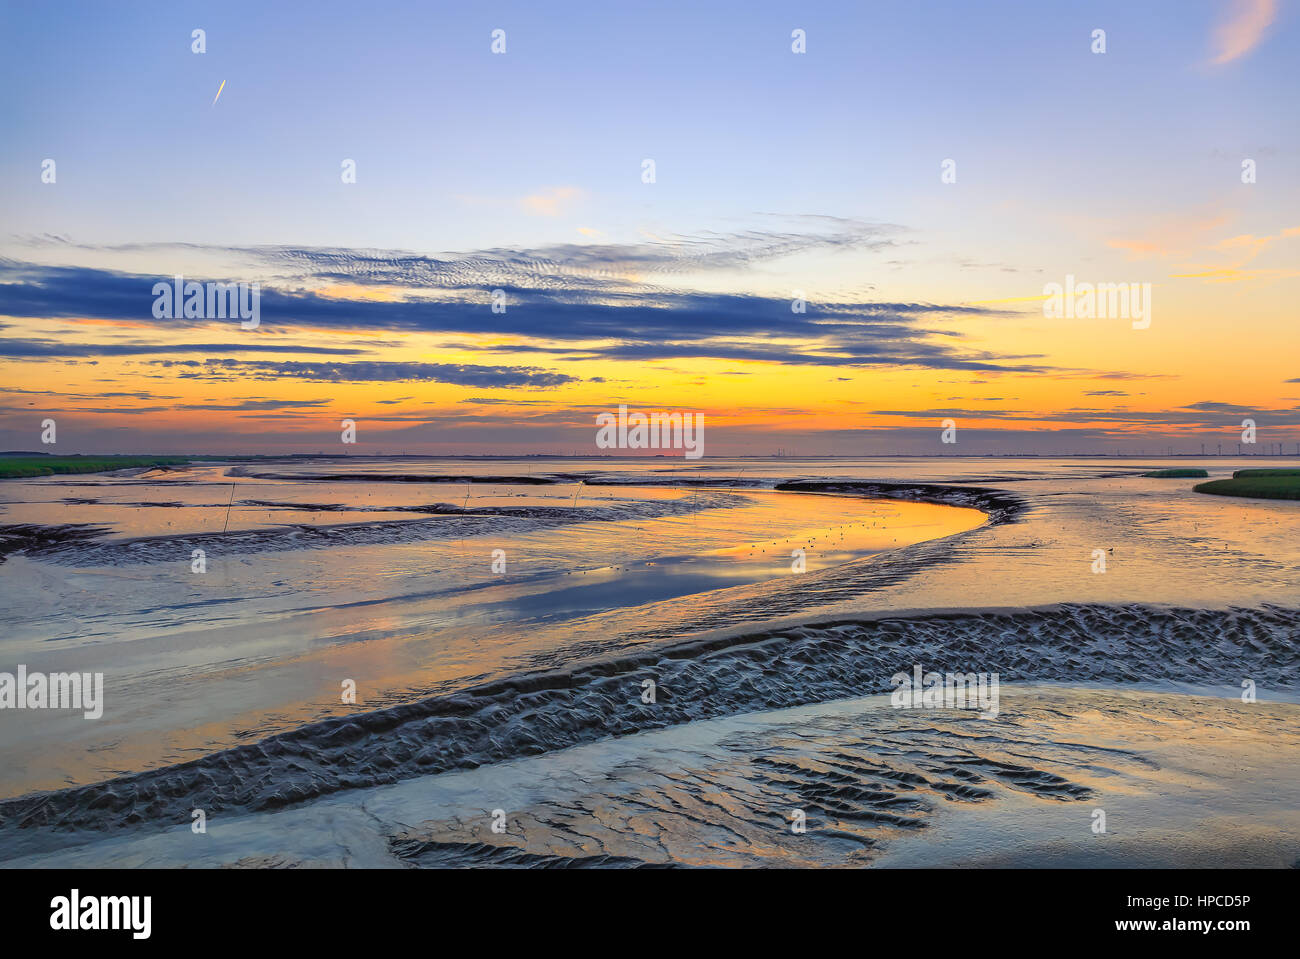 The Dollart, a bay in the wadden sea between the northern Netherlands and Germany Stock Photo